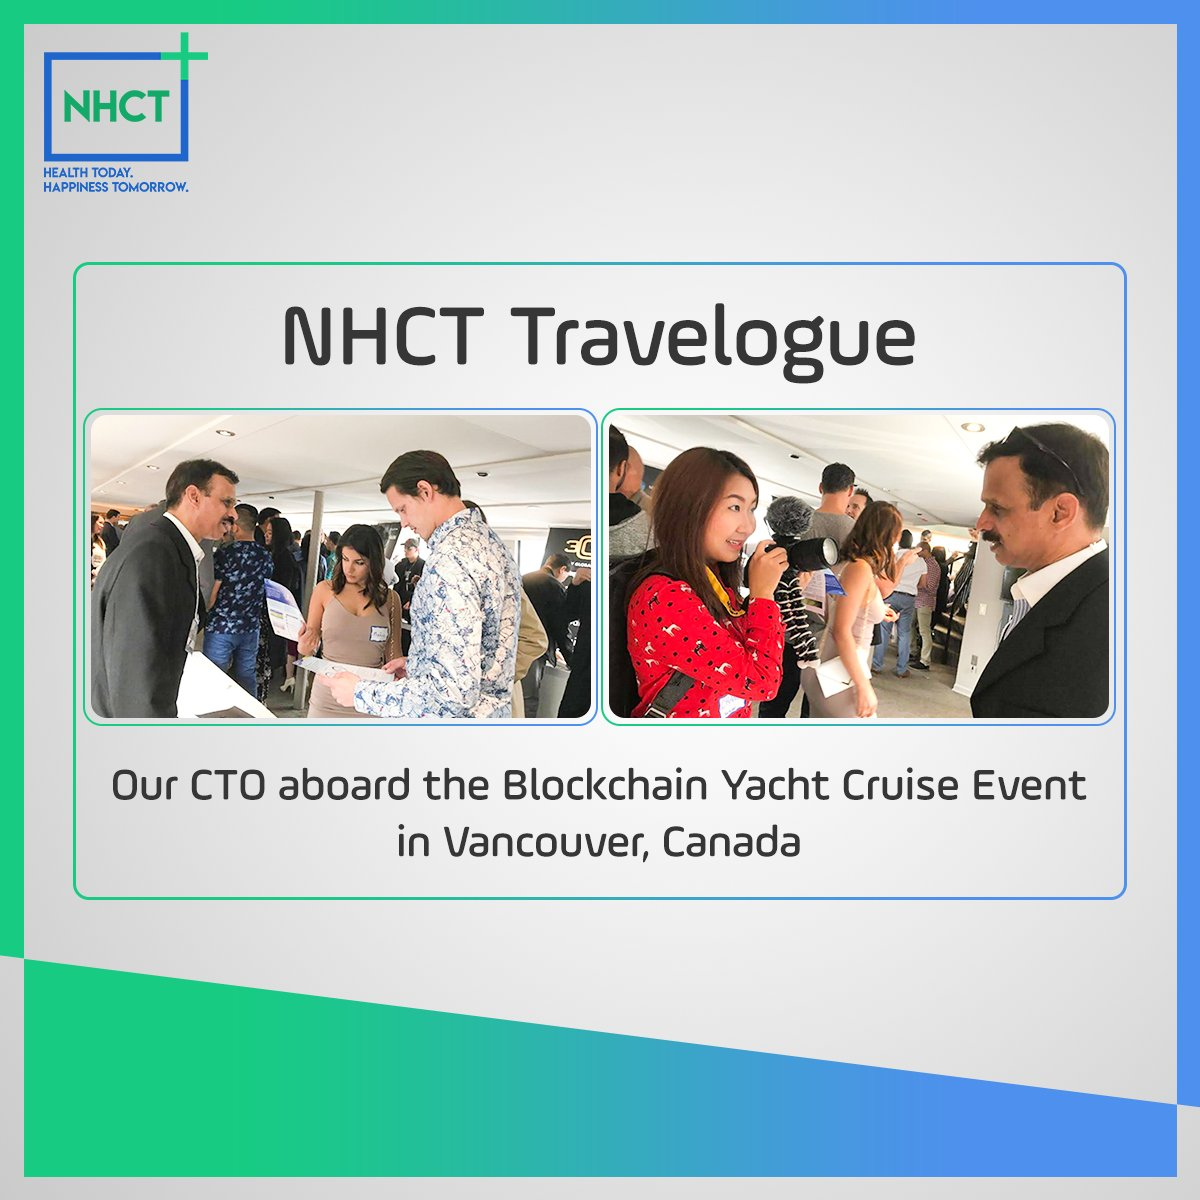 #Healthcare on blockchain, an amazing concept as viewed by many at the Blockchain Yacht Cruise Event in Vancouver, Canada. Our CTO, Nagarjuna Vanagala, demonstrated the power of #NHCT to the attendees. A glimpse of our presence at the event. View more at -  https://www. nhct.io/gallery.php  &nbsp;  <br>http://pic.twitter.com/3fTk1xSGMd